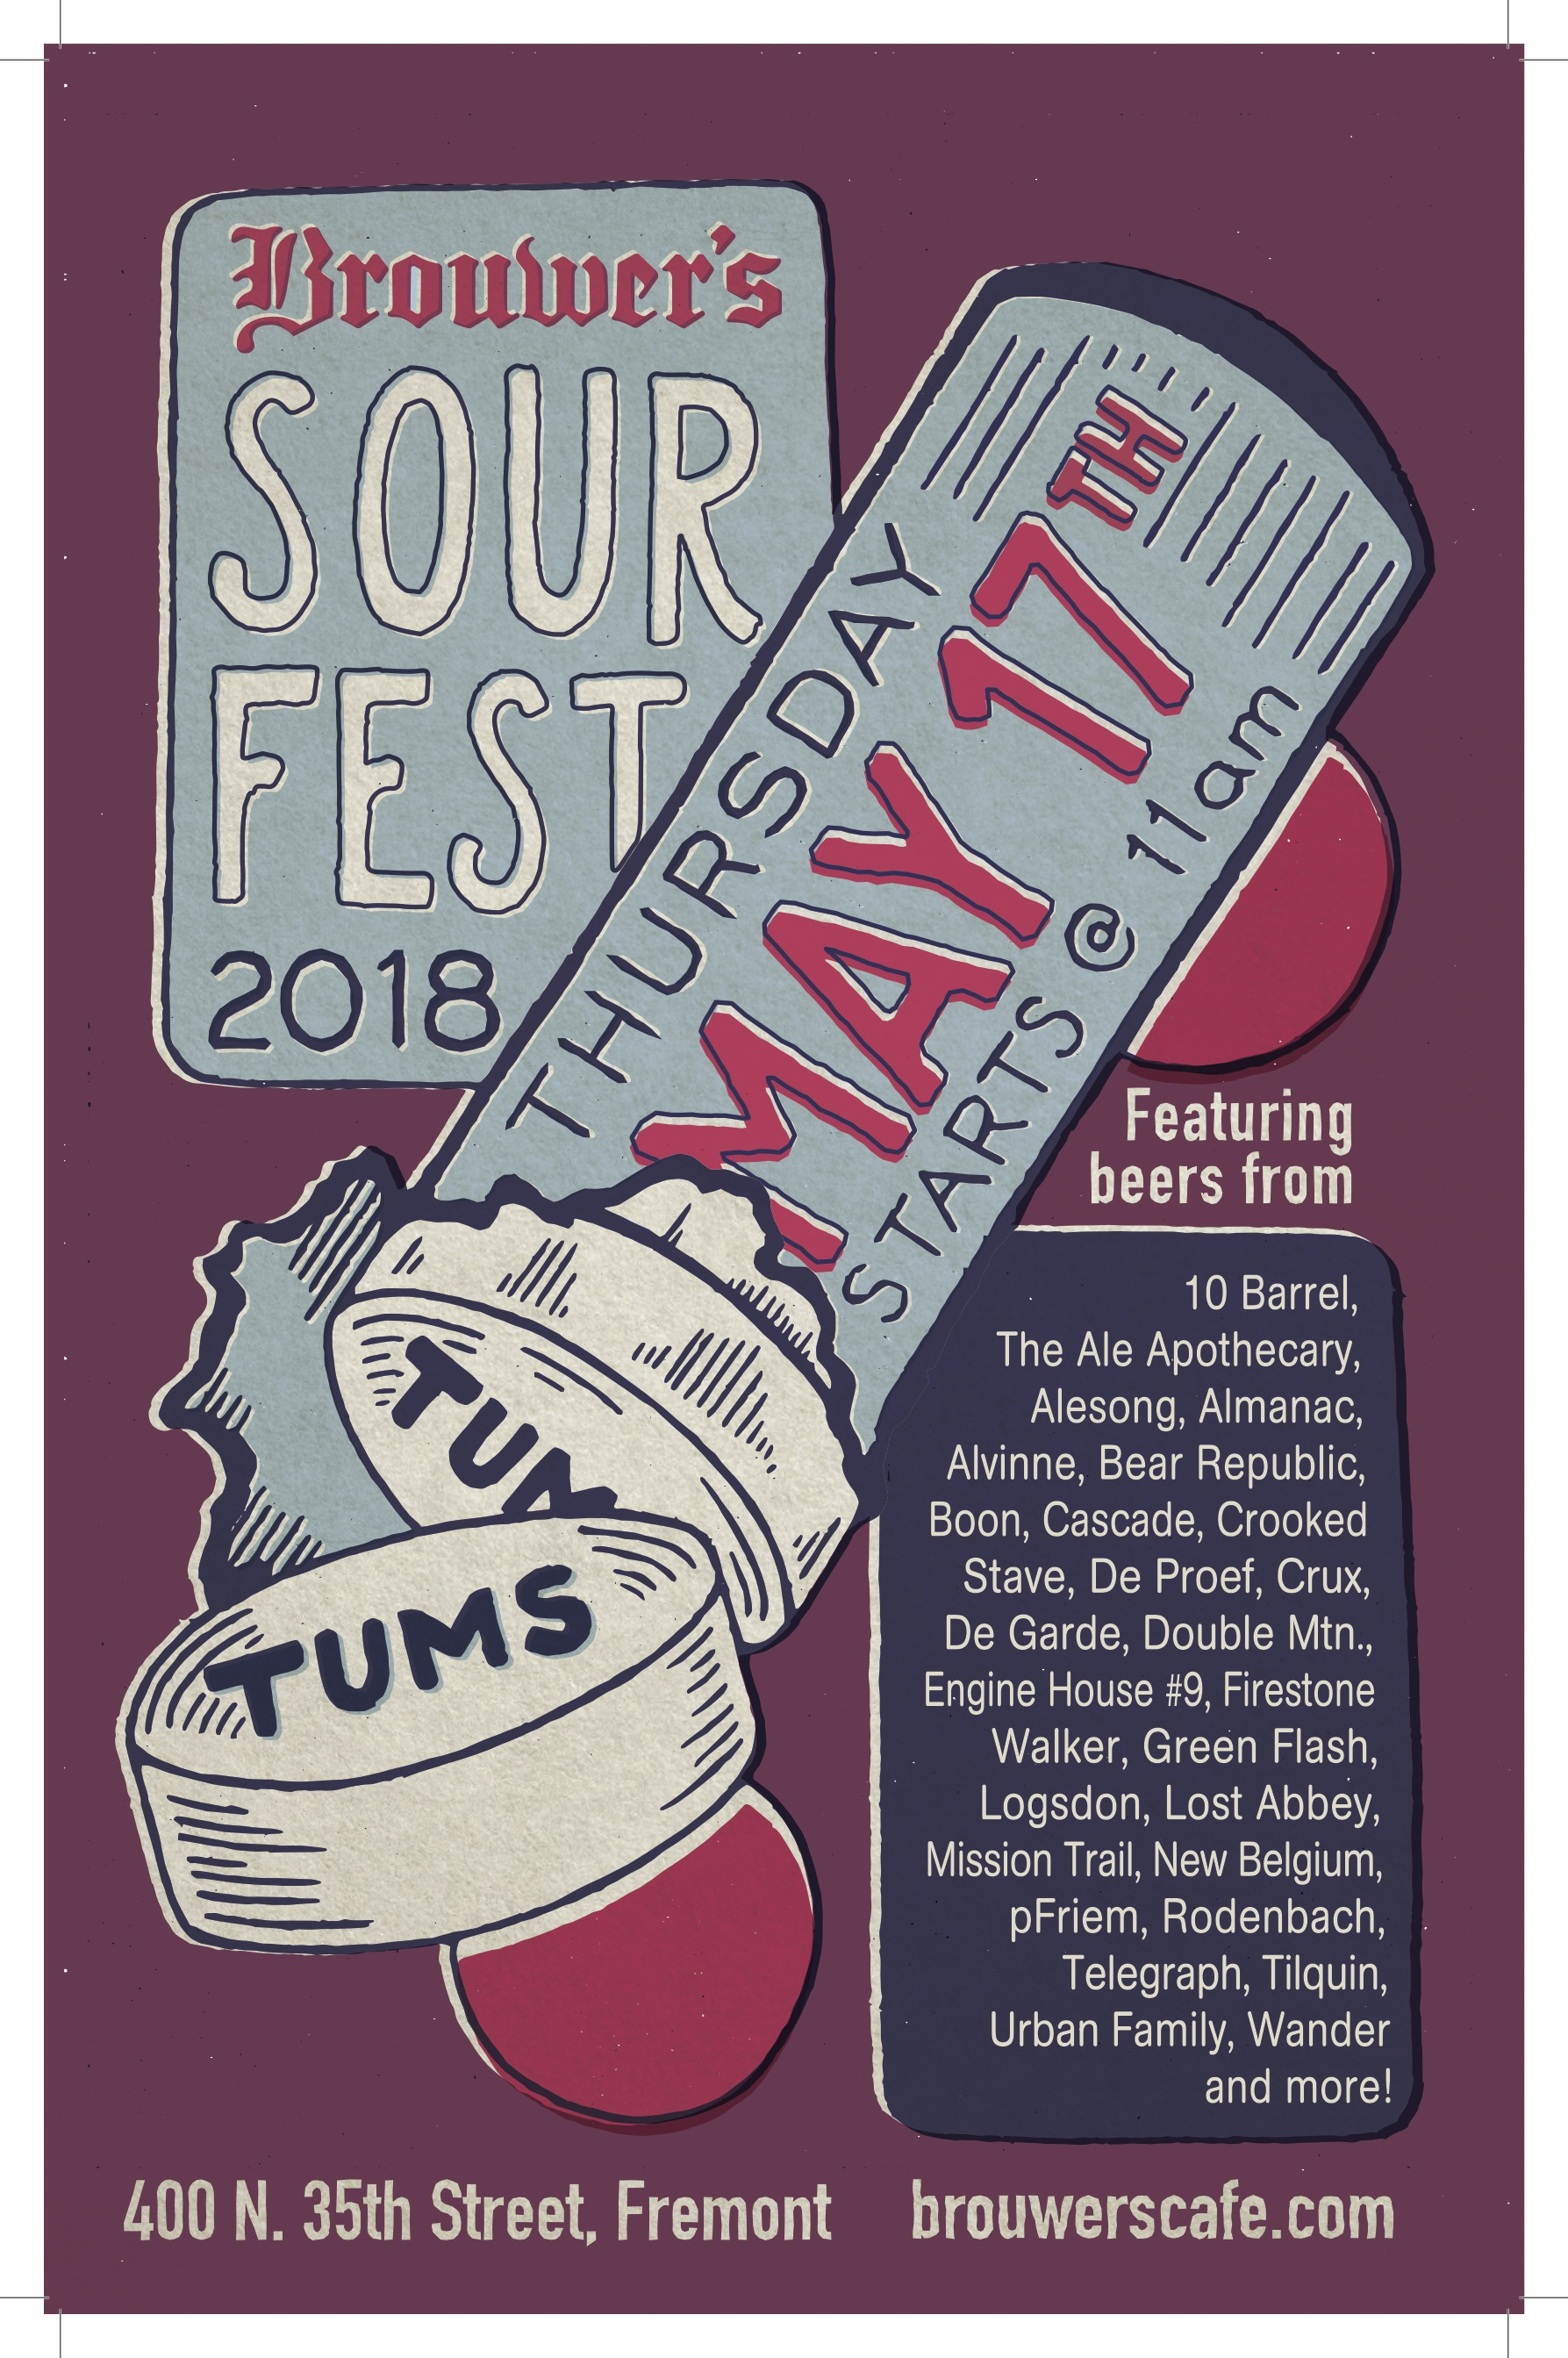 Thursday, May 17th @11am Sour Fest